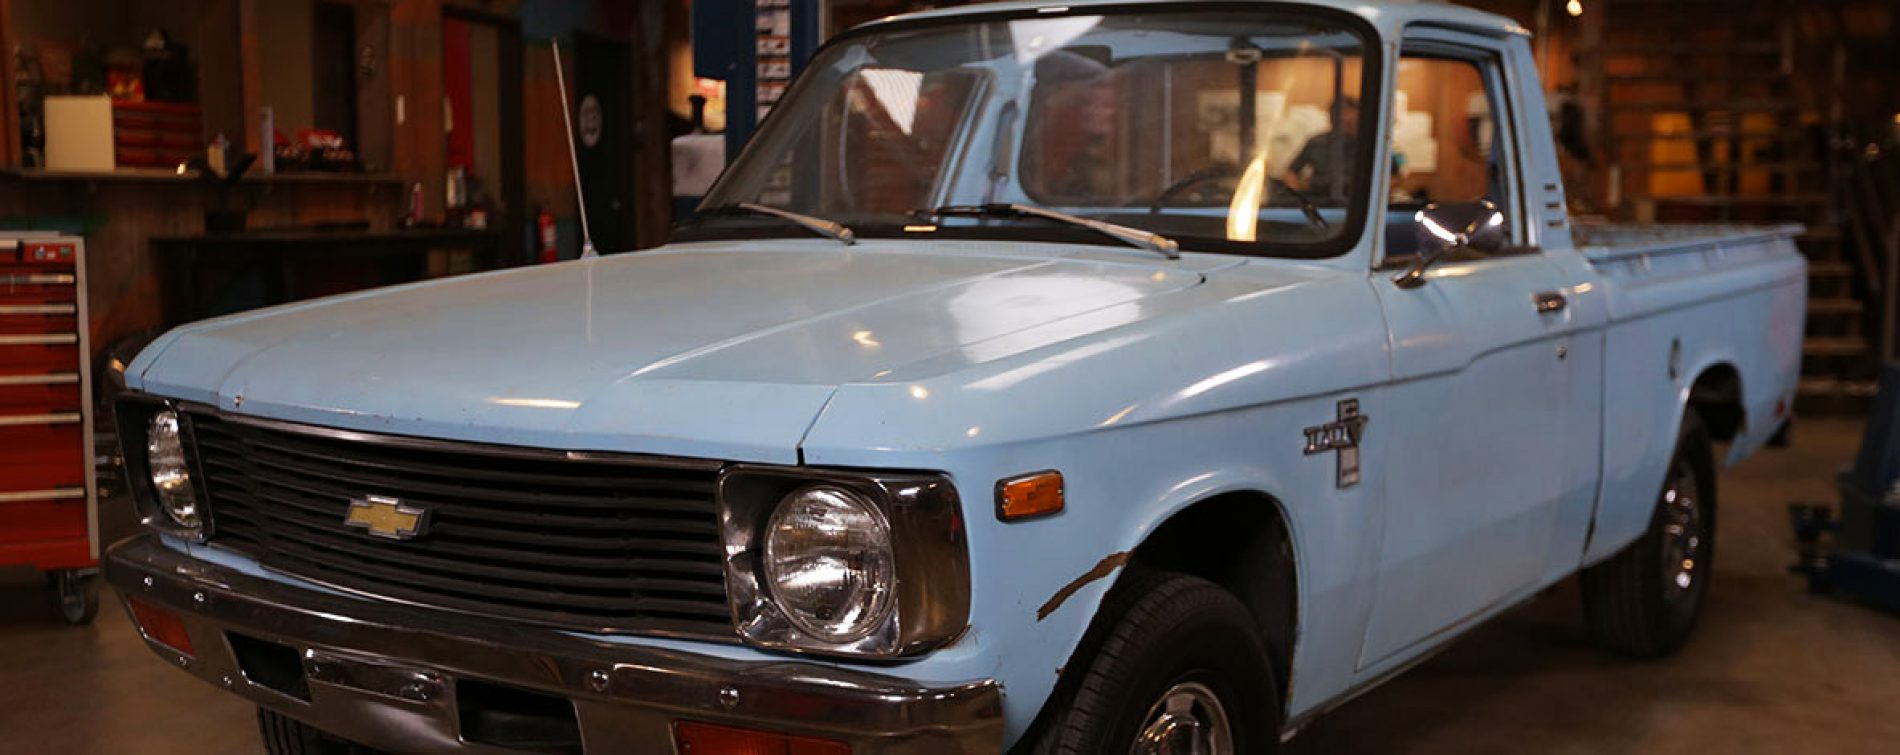 1980 Ford Truck >> Wheeler Dealers » 1980 Chevy LUV